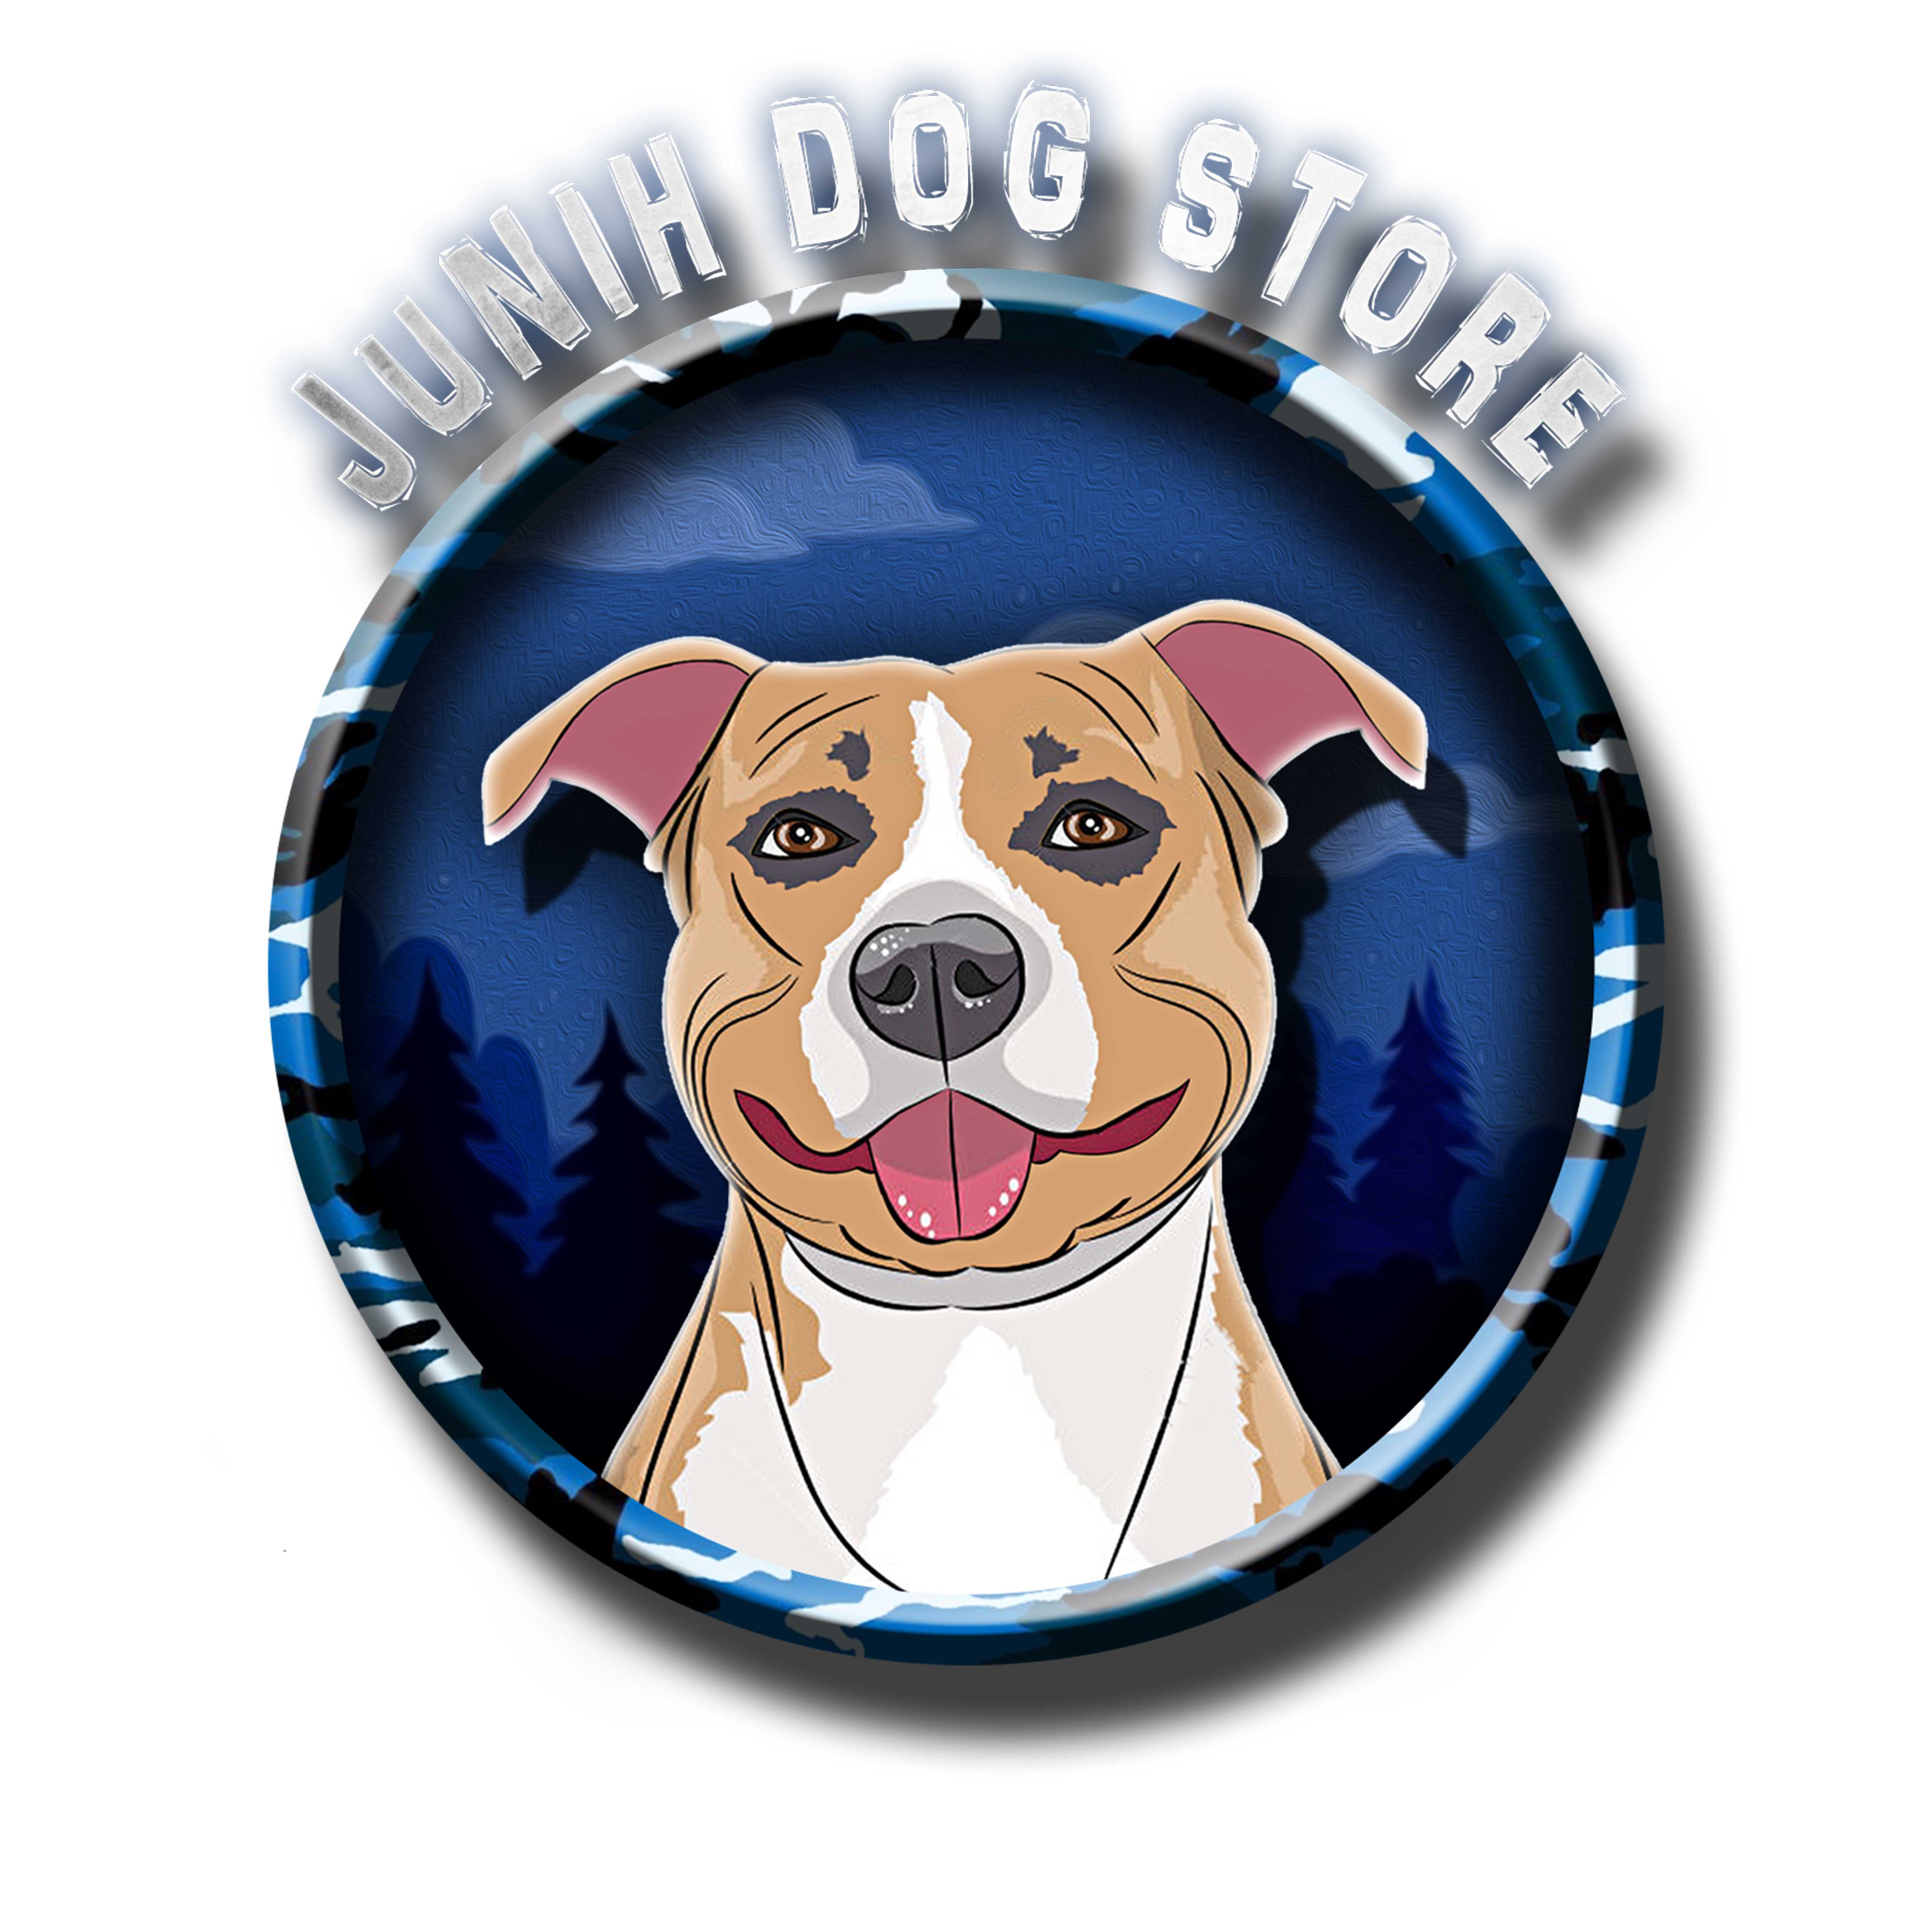 LOGO 2018 junih dog store